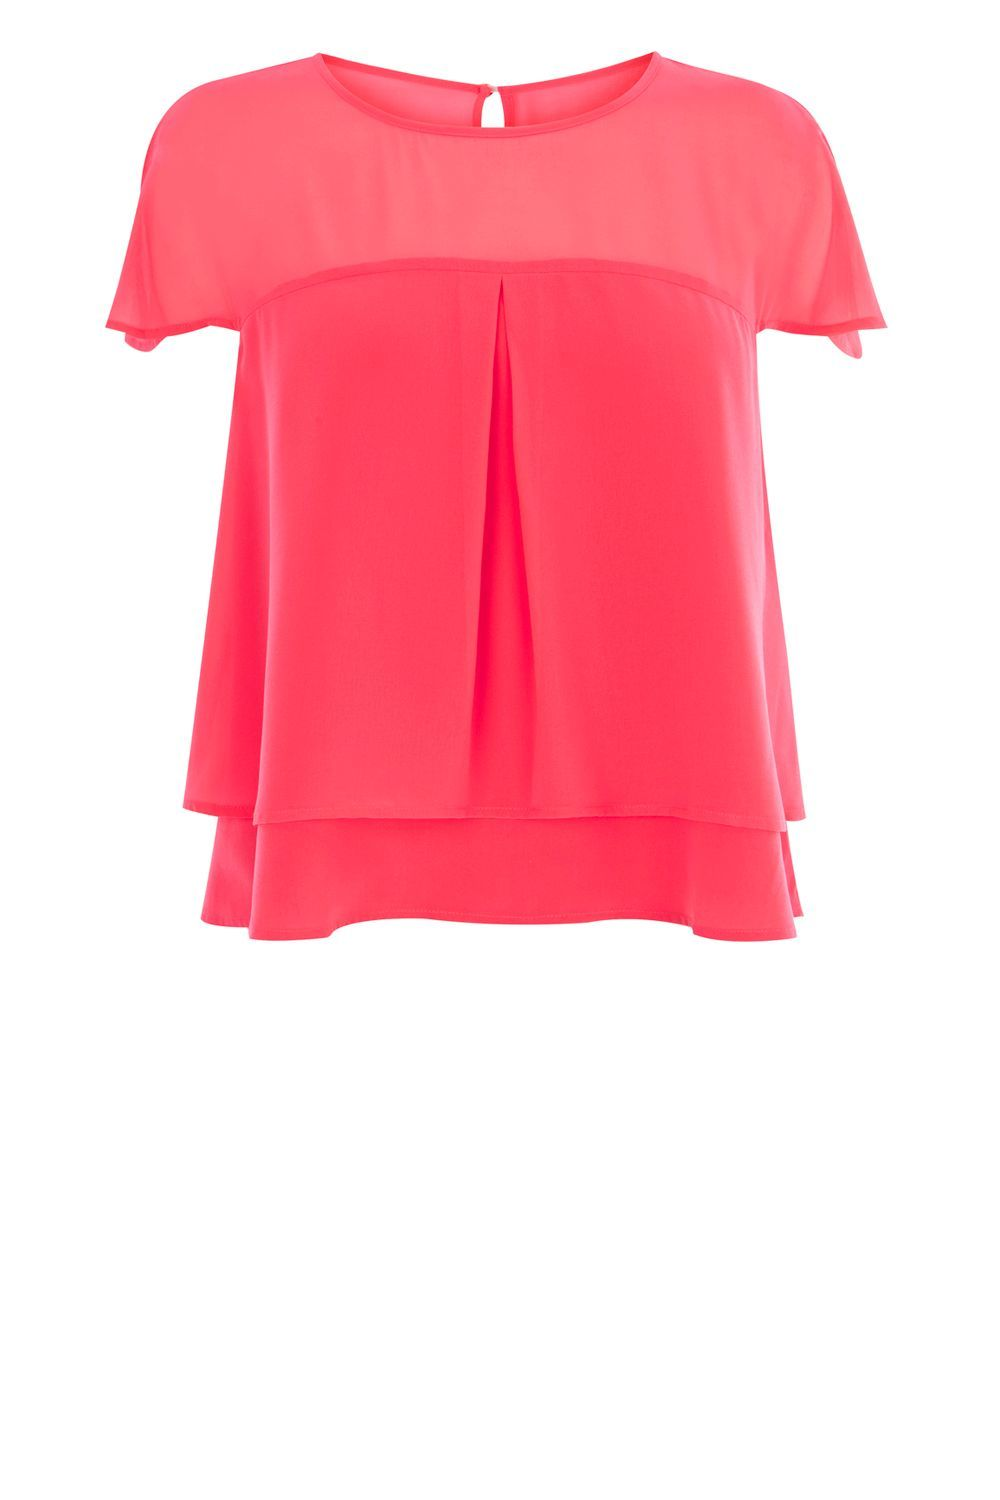 Evangaline Top, Pink - neckline: round neck; sleeve style: capped; pattern: plain; predominant colour: pink; occasions: evening, creative work; length: standard; style: top; fibres: polyester/polyamide - 100%; fit: loose; back detail: keyhole/peephole detail at back; sleeve length: short sleeve; texture group: sheer fabrics/chiffon/organza etc.; pattern type: fabric; season: a/w 2016